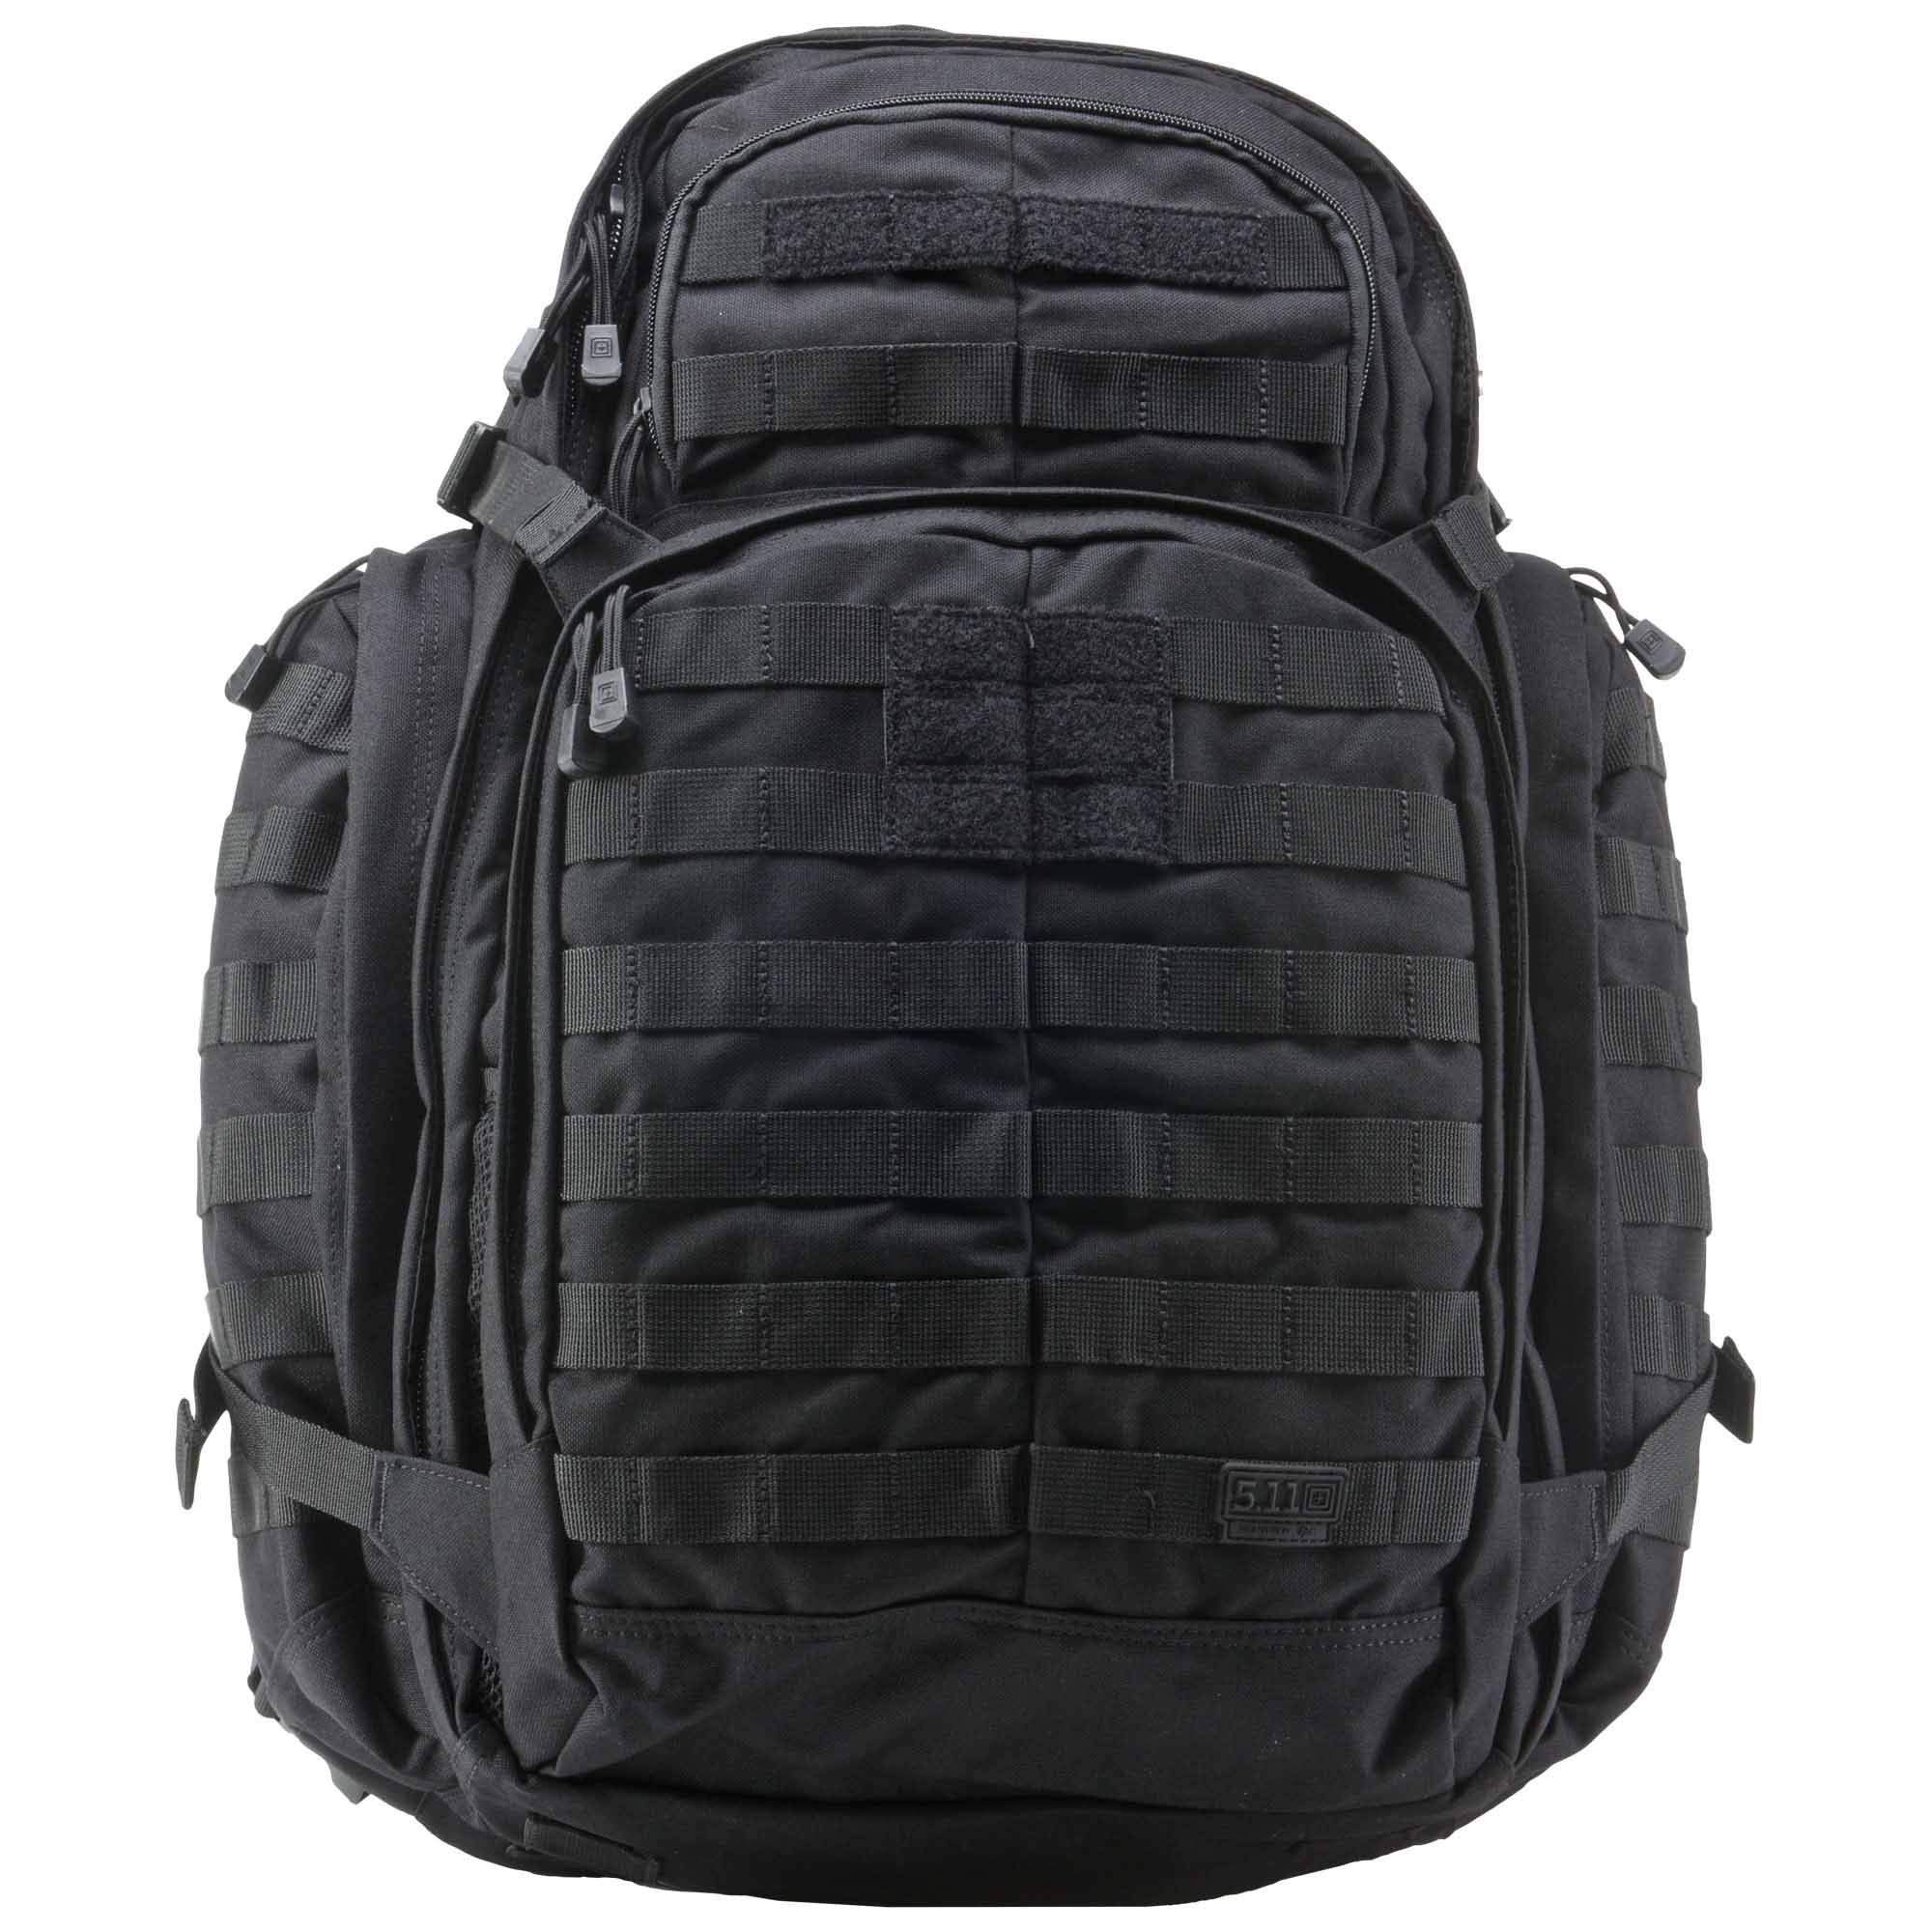 7e244b4003 Best Rated in Tactical Backpacks   Helpful Customer Reviews - Amazon.com